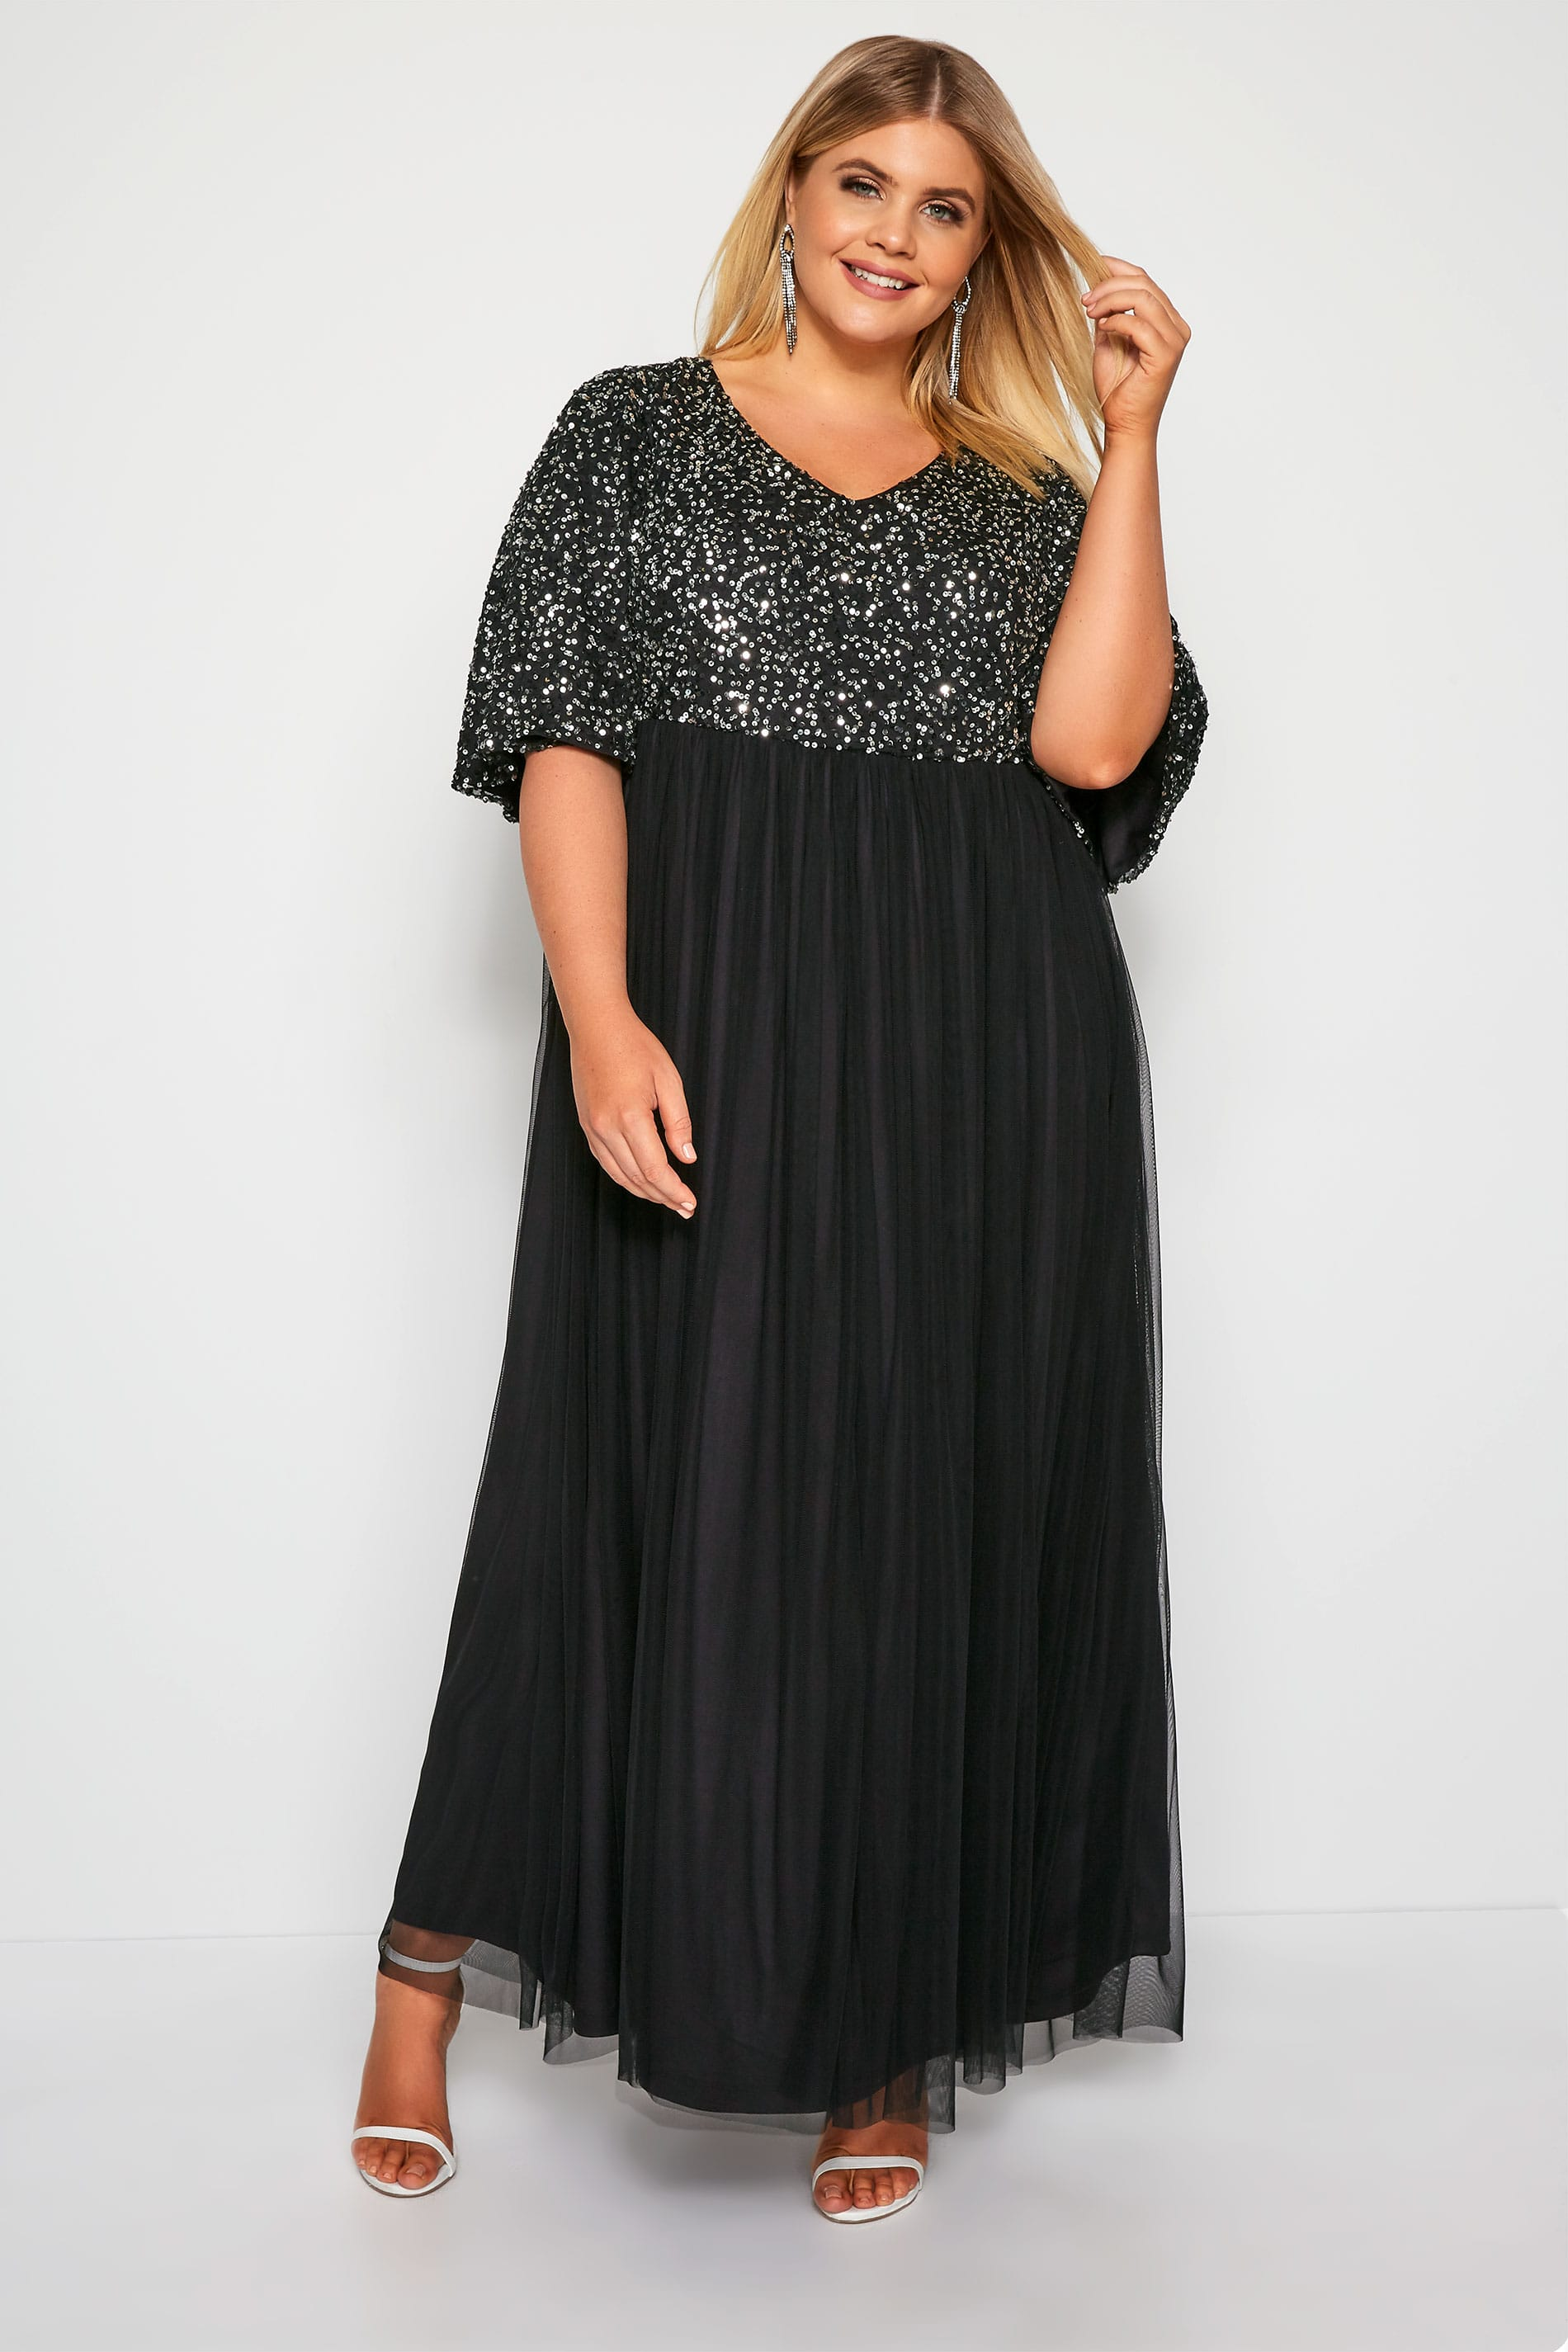 LUXE Black Sequin Embellished Evening Dress